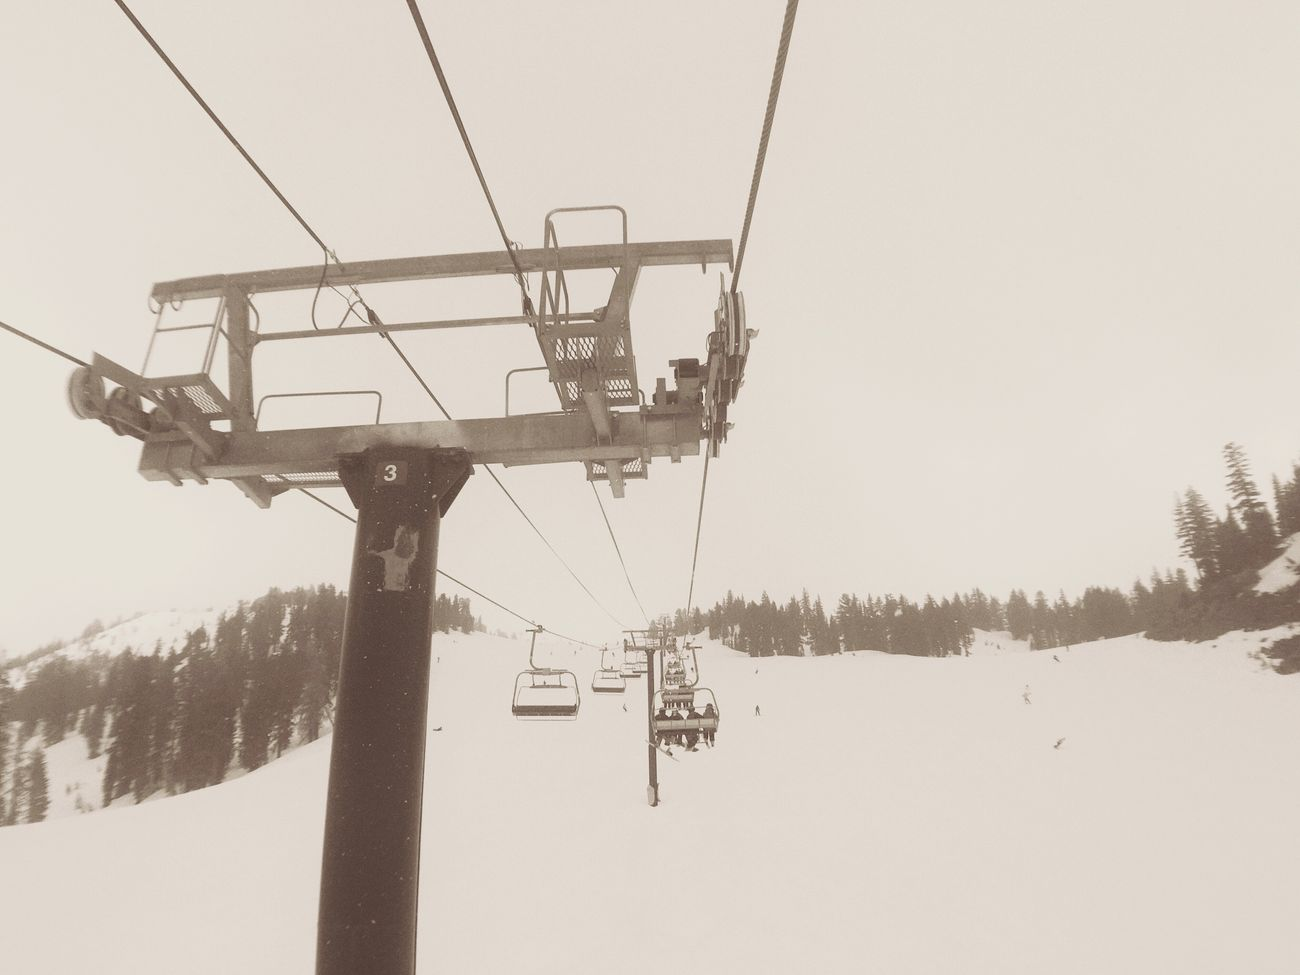 Noir Chairlift Check This Out Outdoor Photography The Great Outdoors With Adobe Drastic Edit From My Point Of View Random Landscape Sitting Pretty